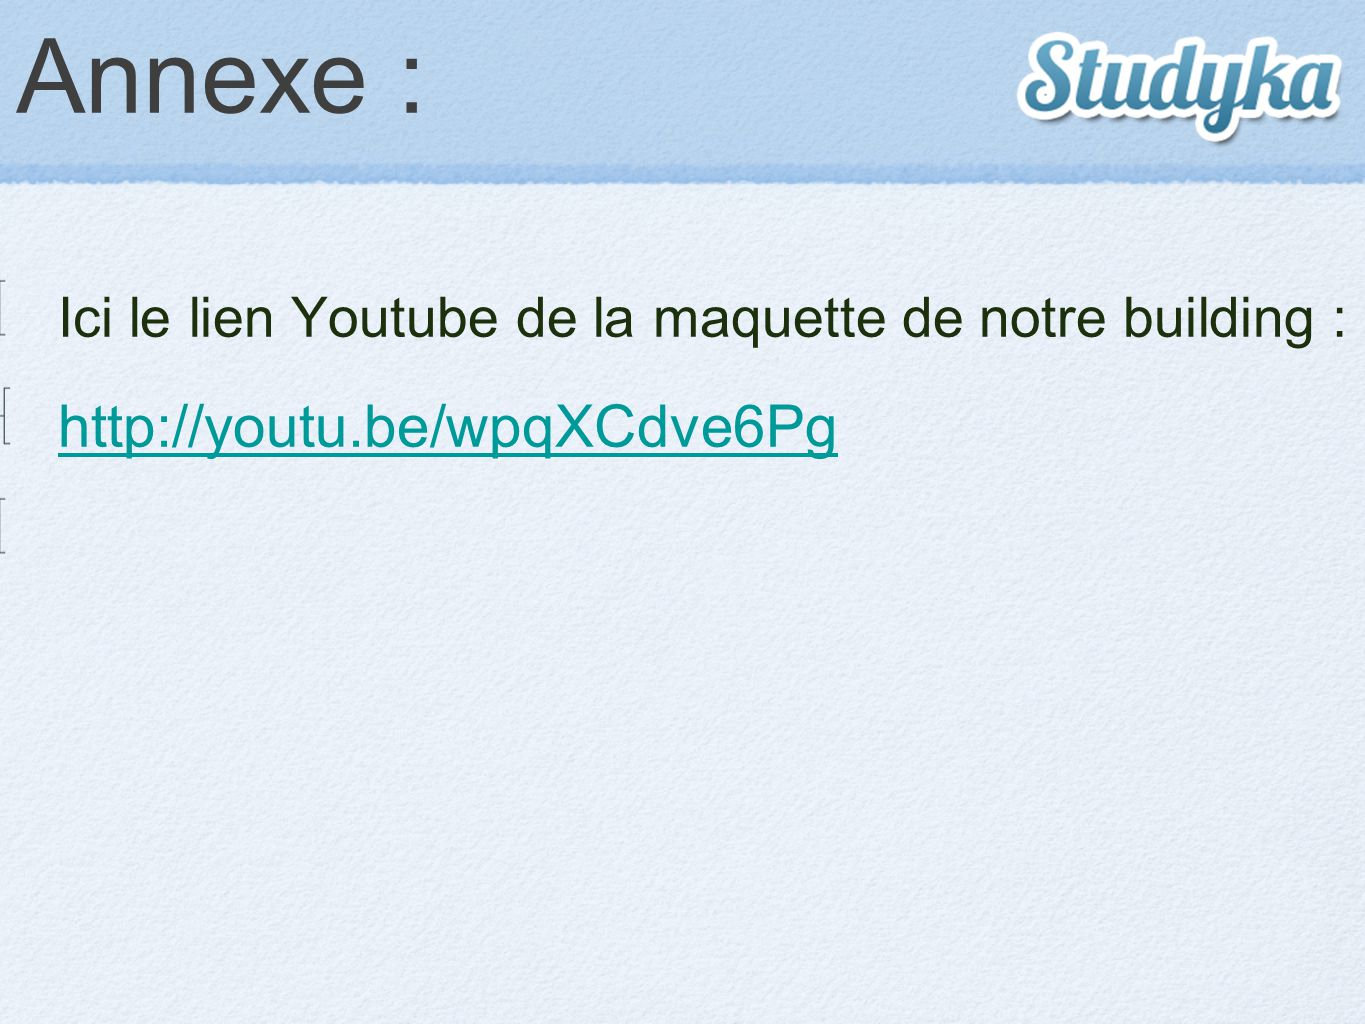 Annexe : http://youtu.be/wpqXCdve6Pg